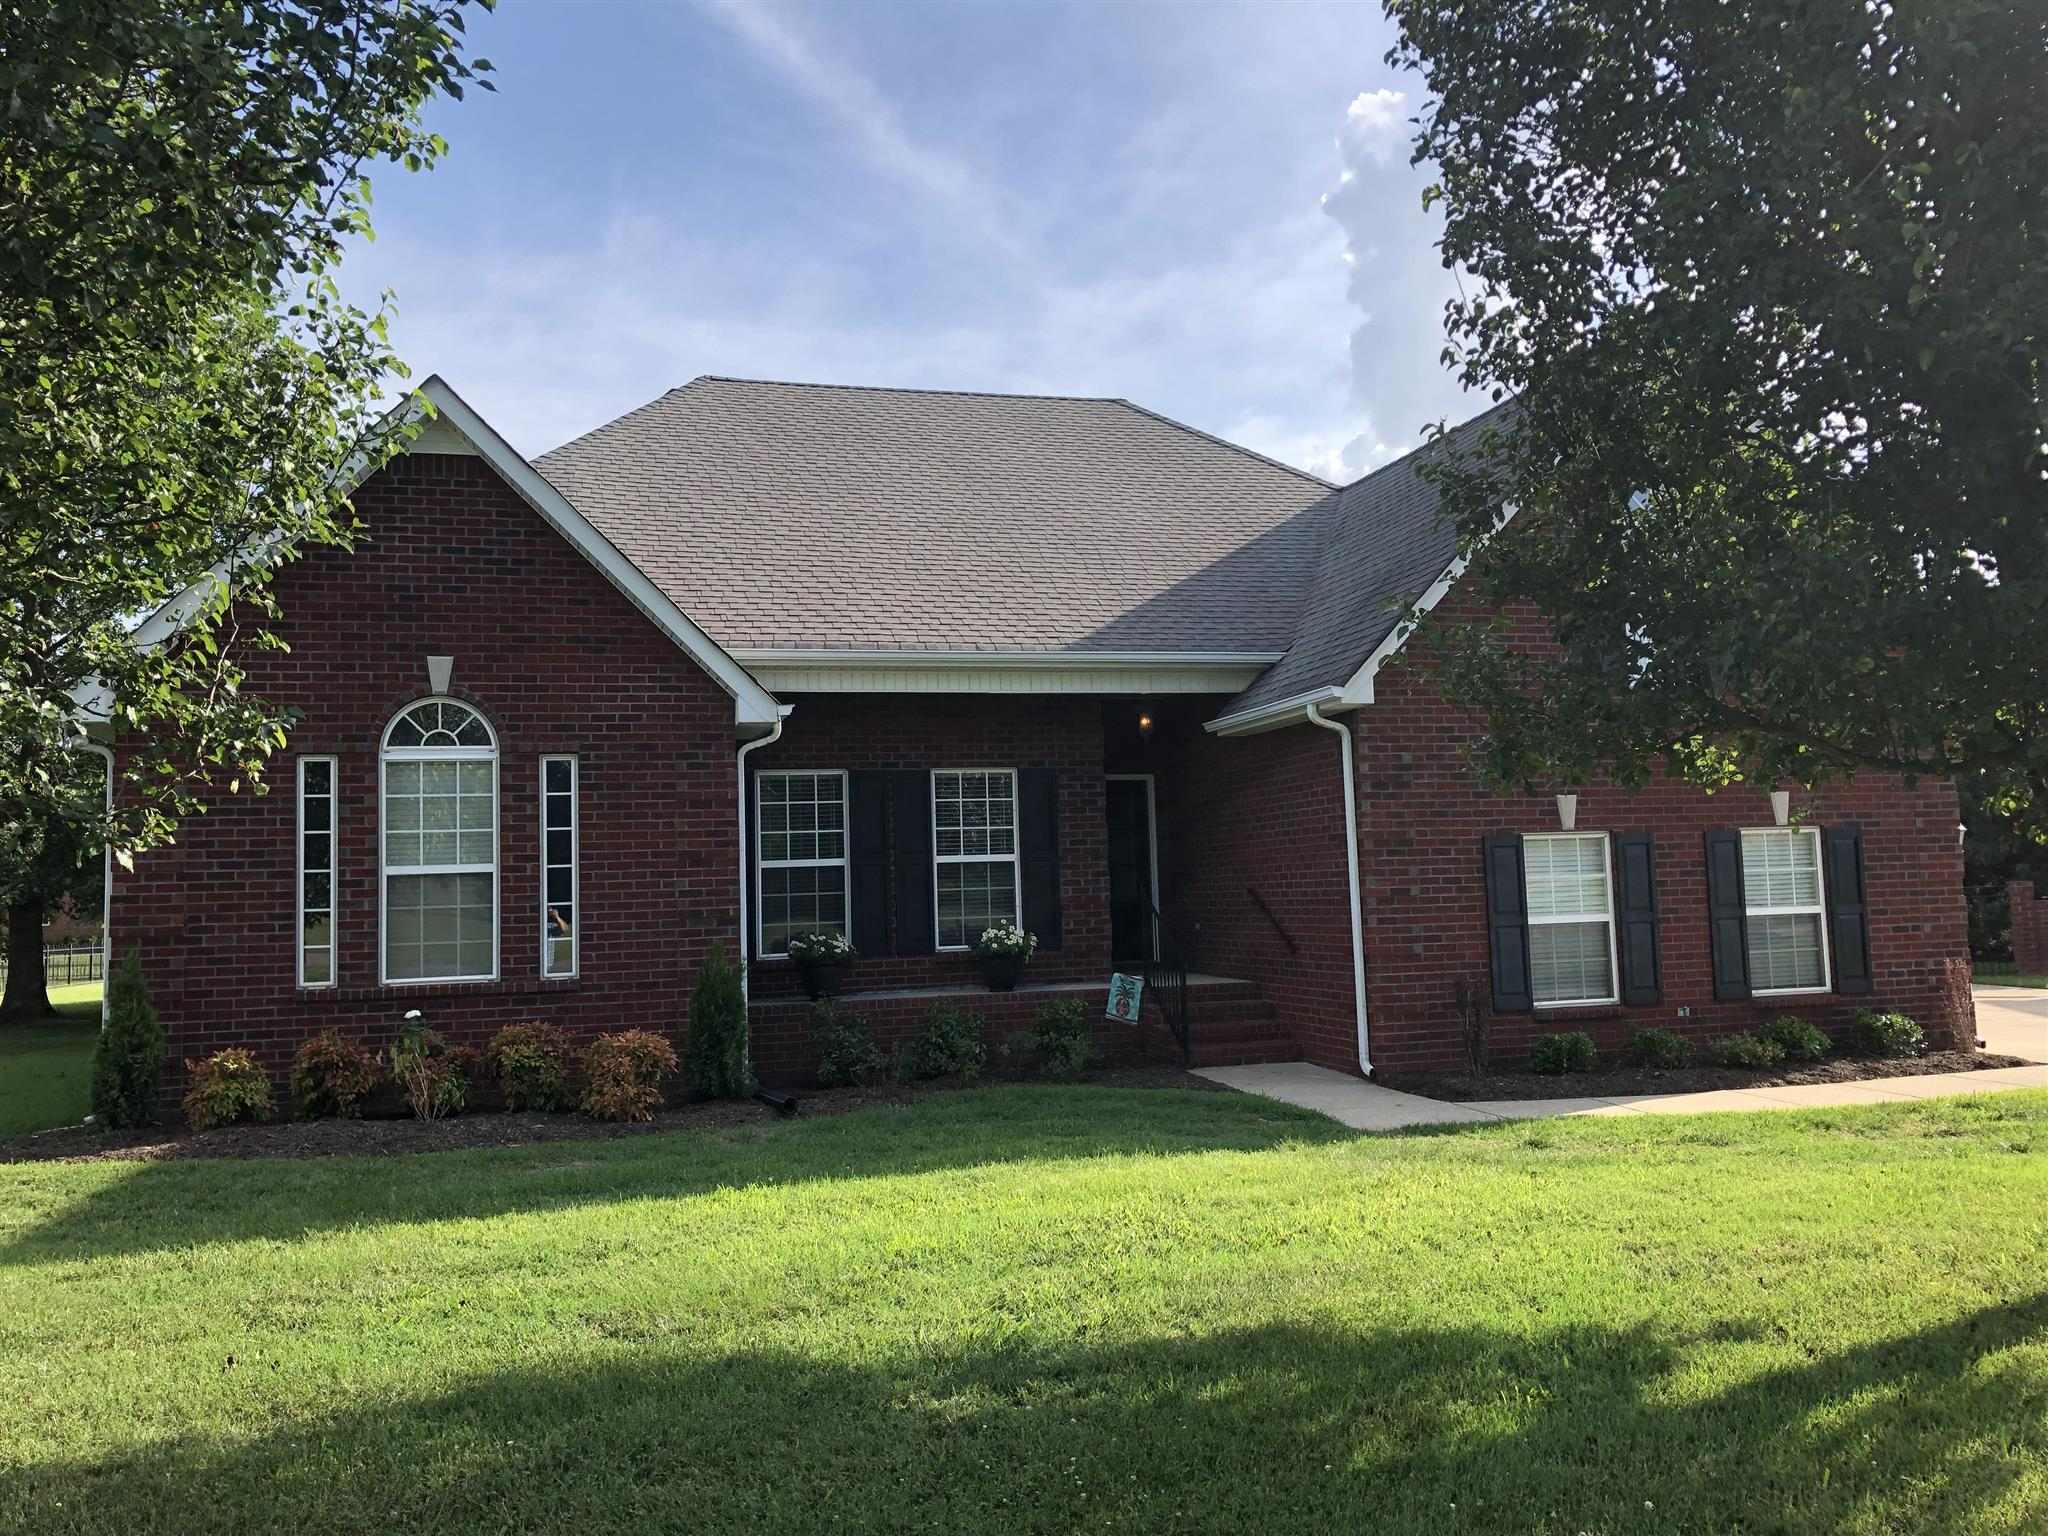 109 Lexham Ct, Murfreesboro in Rutherford County County, TN 37128 Home for Sale